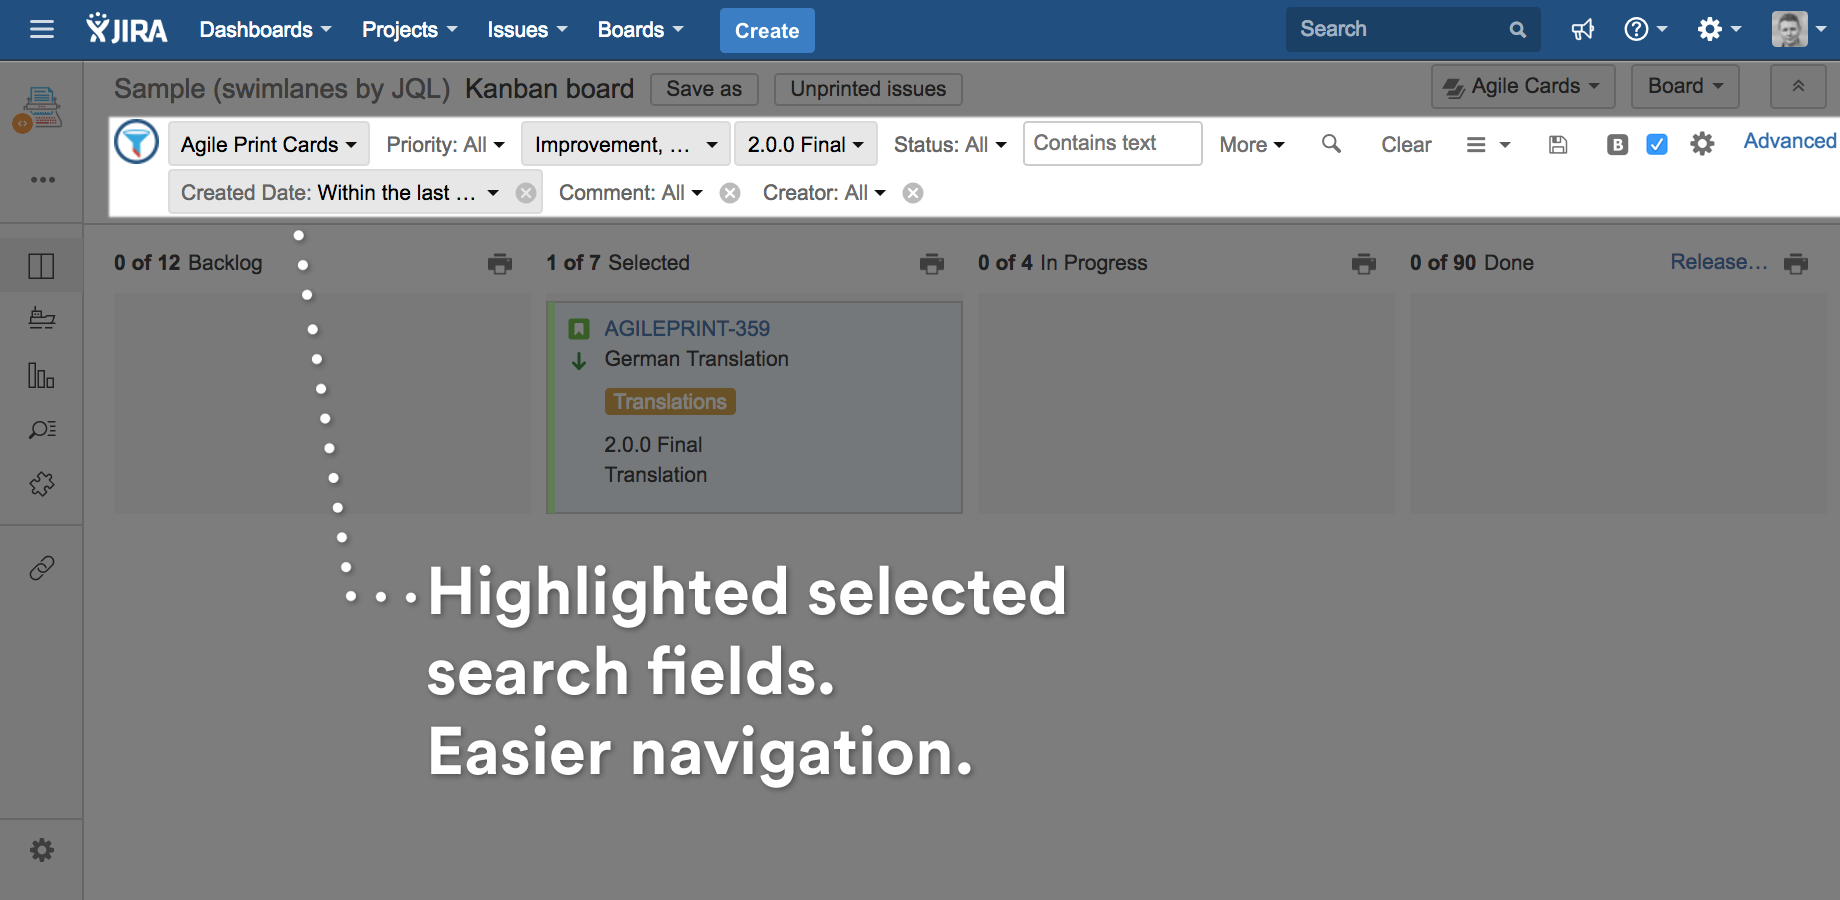 37.Highlight selected fields.png